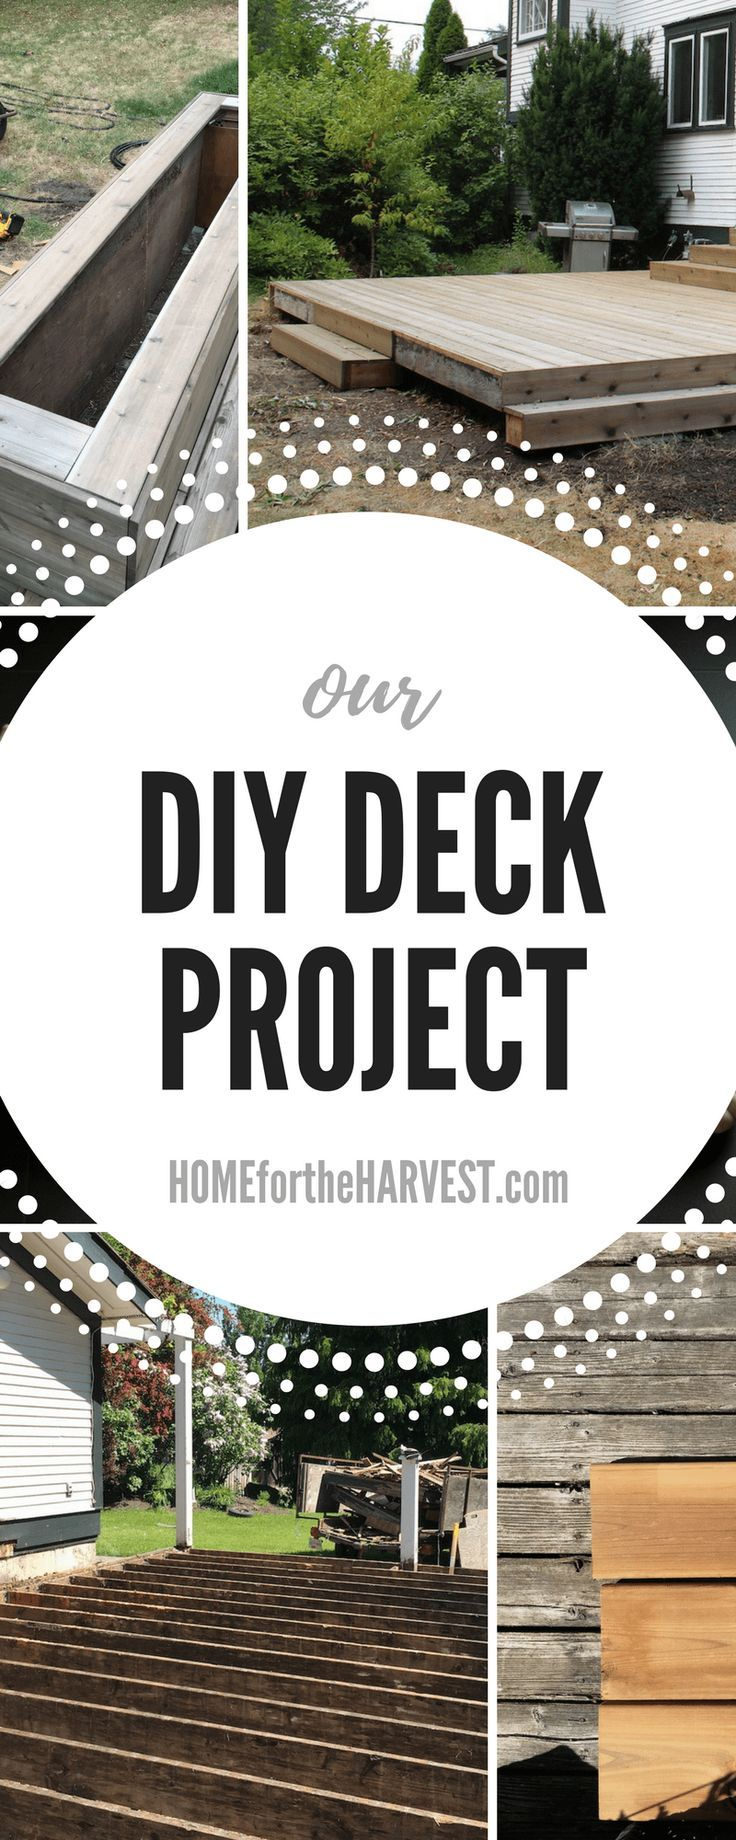 Wow! This DIY deck project took us a few weekends this summer - and was TOTALLY worth it! We laid new cedar decking to update our old deck. #deck #DIYdeck #deckproject #cedardecking